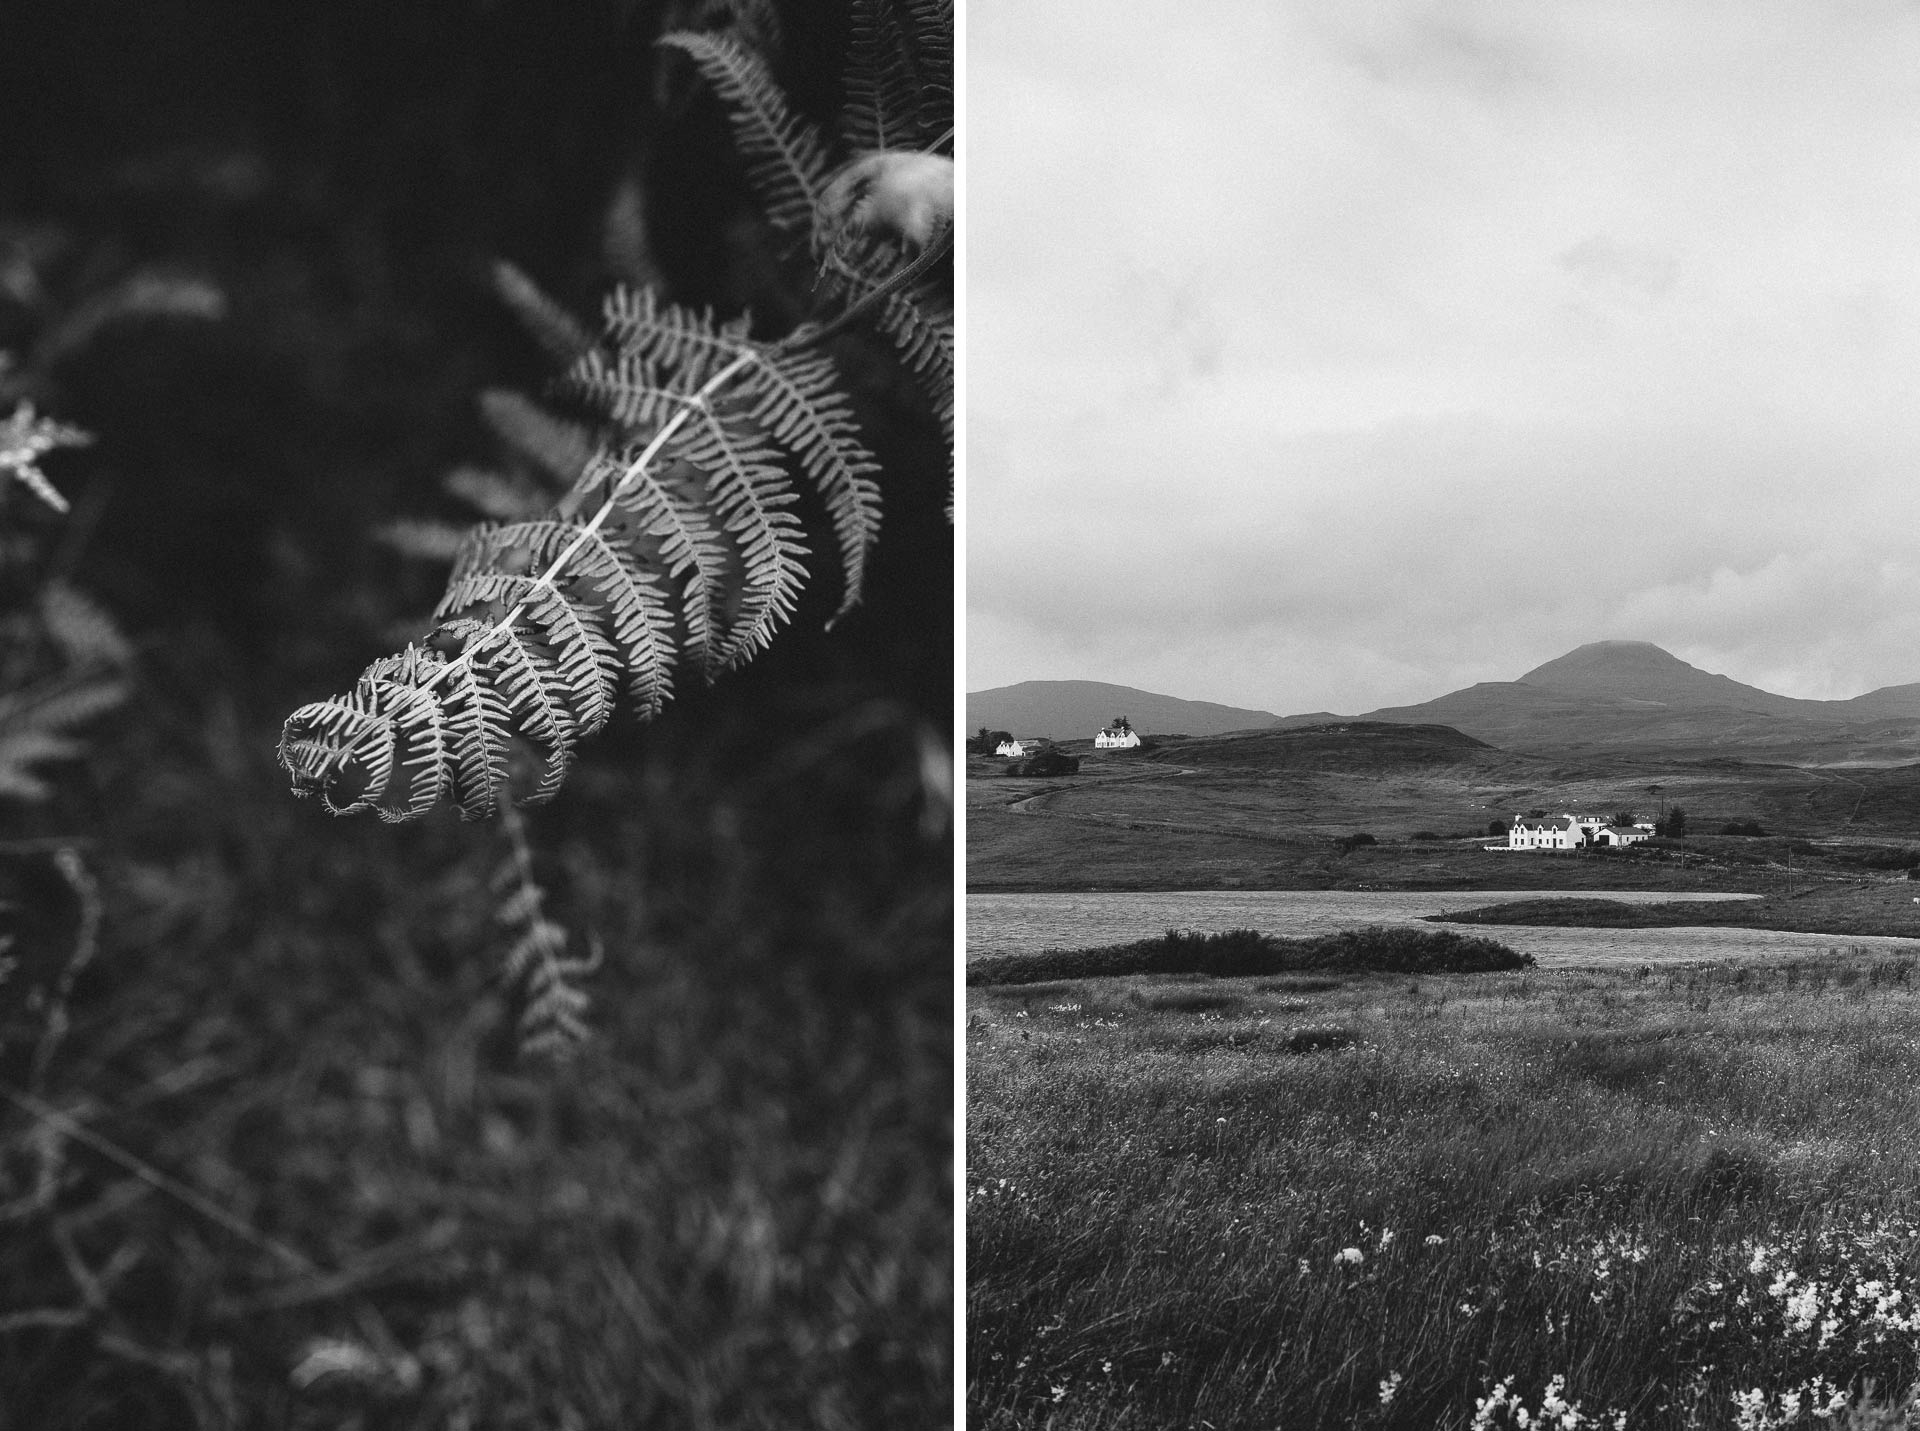 Megan_Matt_Elopement_IntimateWedding_Scotland_IsleOfSkye_JeanLaurentGaudy_MIX007